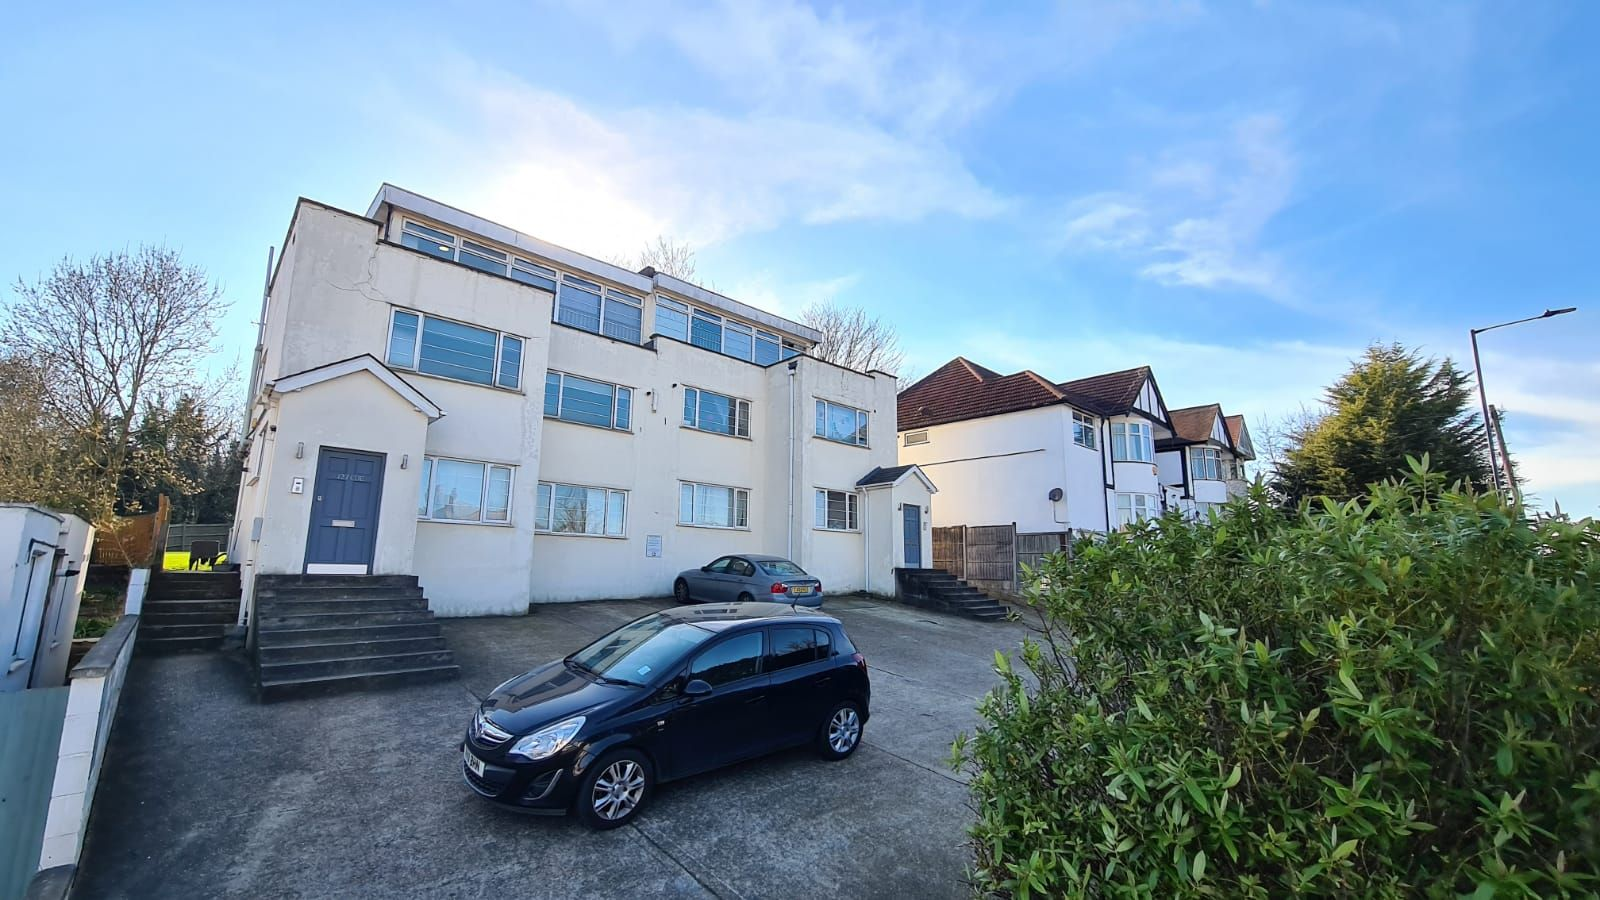 1 bedroom flat flat/apartment To Let in Wembley - Front of the building